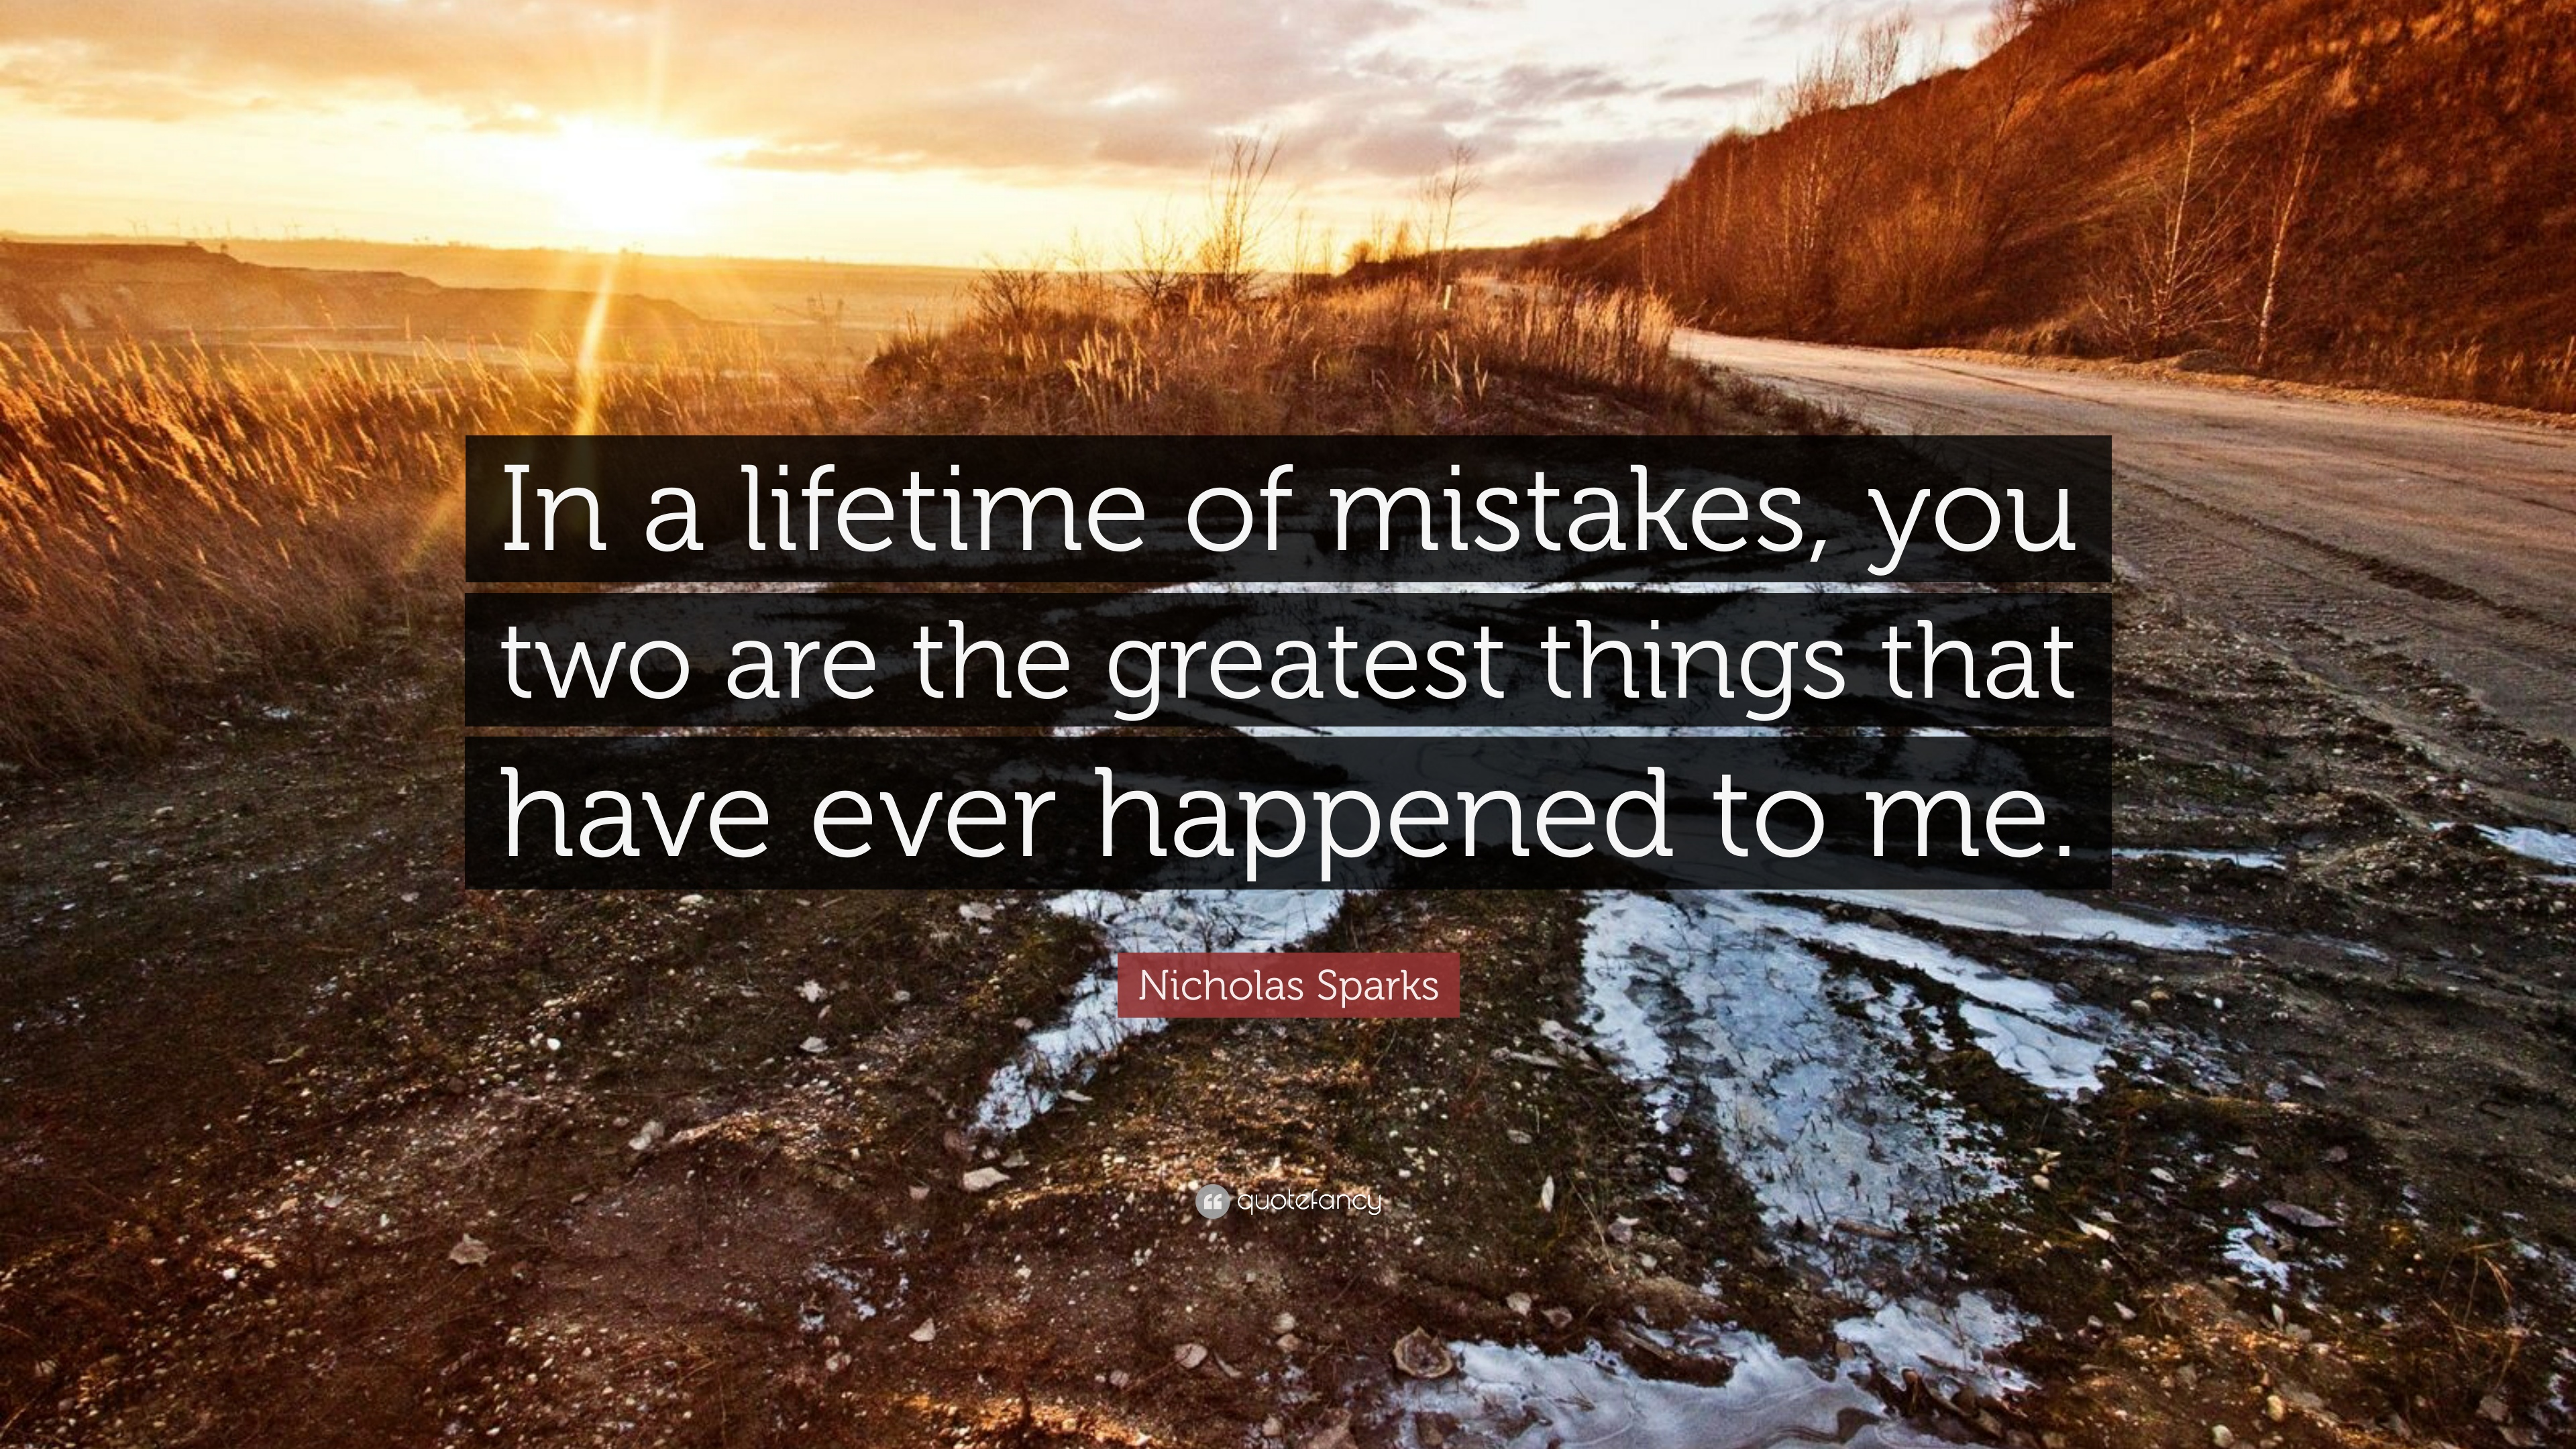 Nicholas Sparks Quote In A Lifetime Of Mistakes You Two Are The